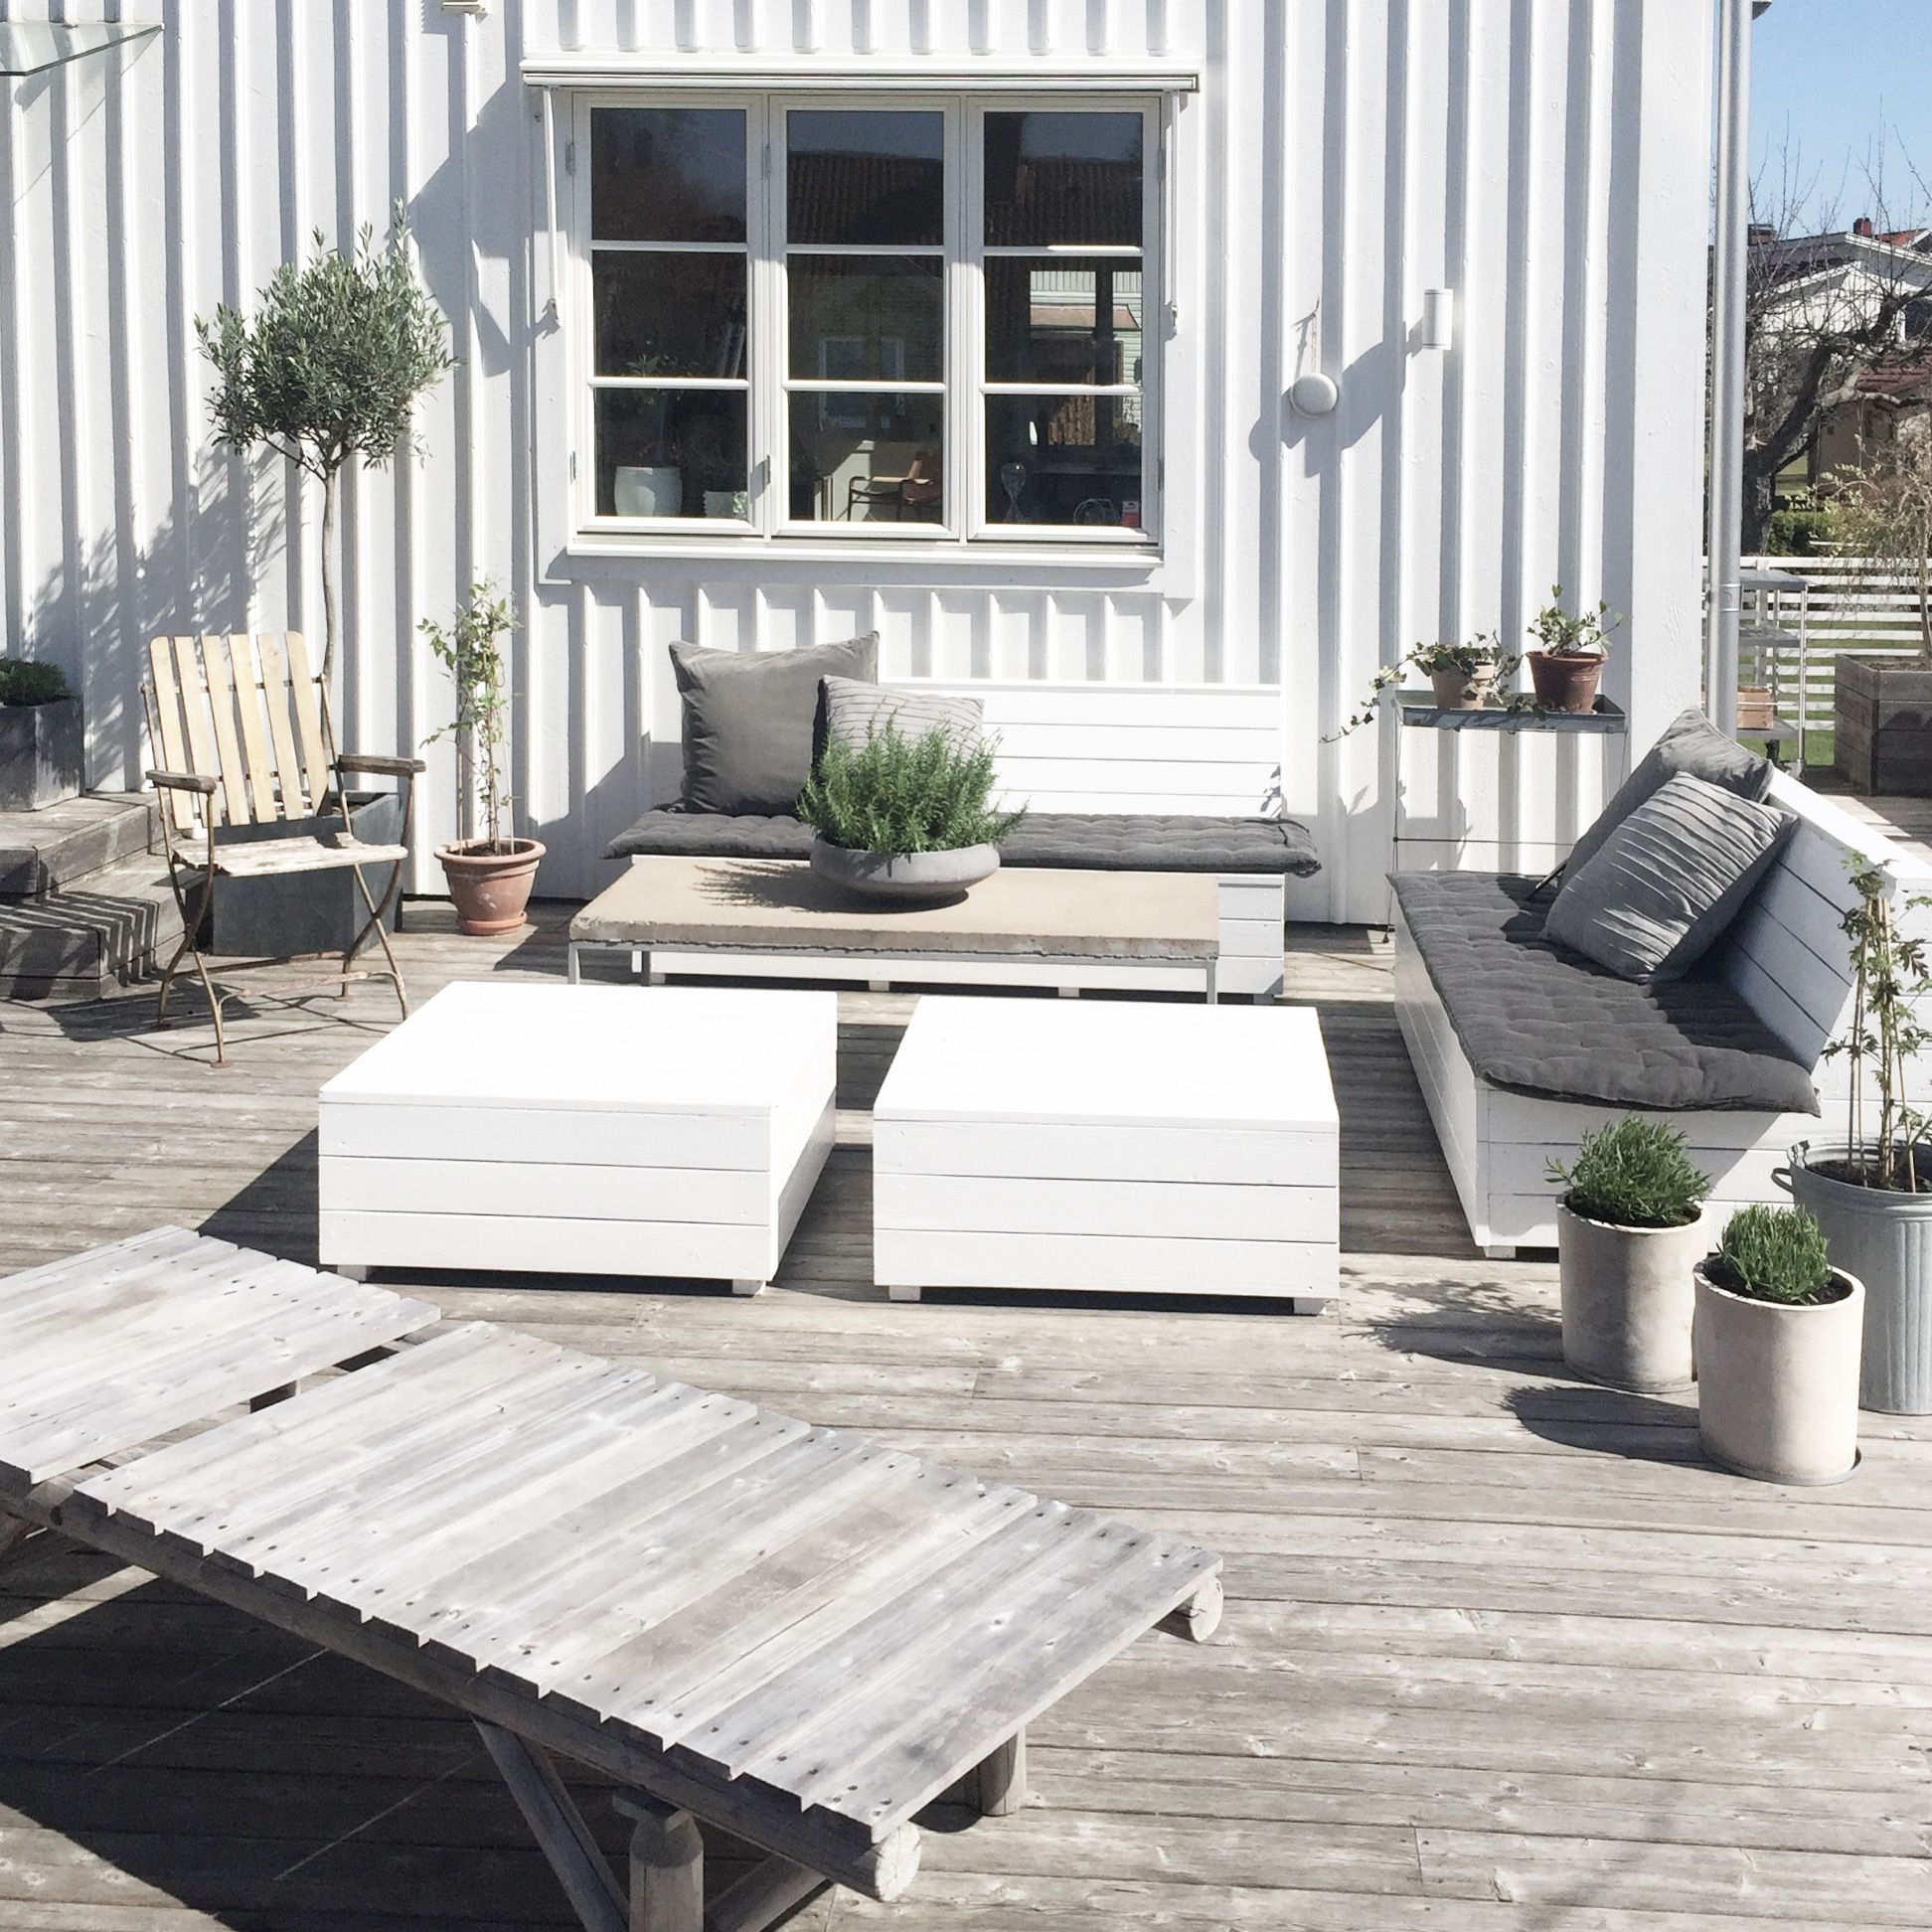 Spring Is In The Air Our Terrace In White Grey Wood And Green Plants Terrasse Holz Holzterrasse Terrasse